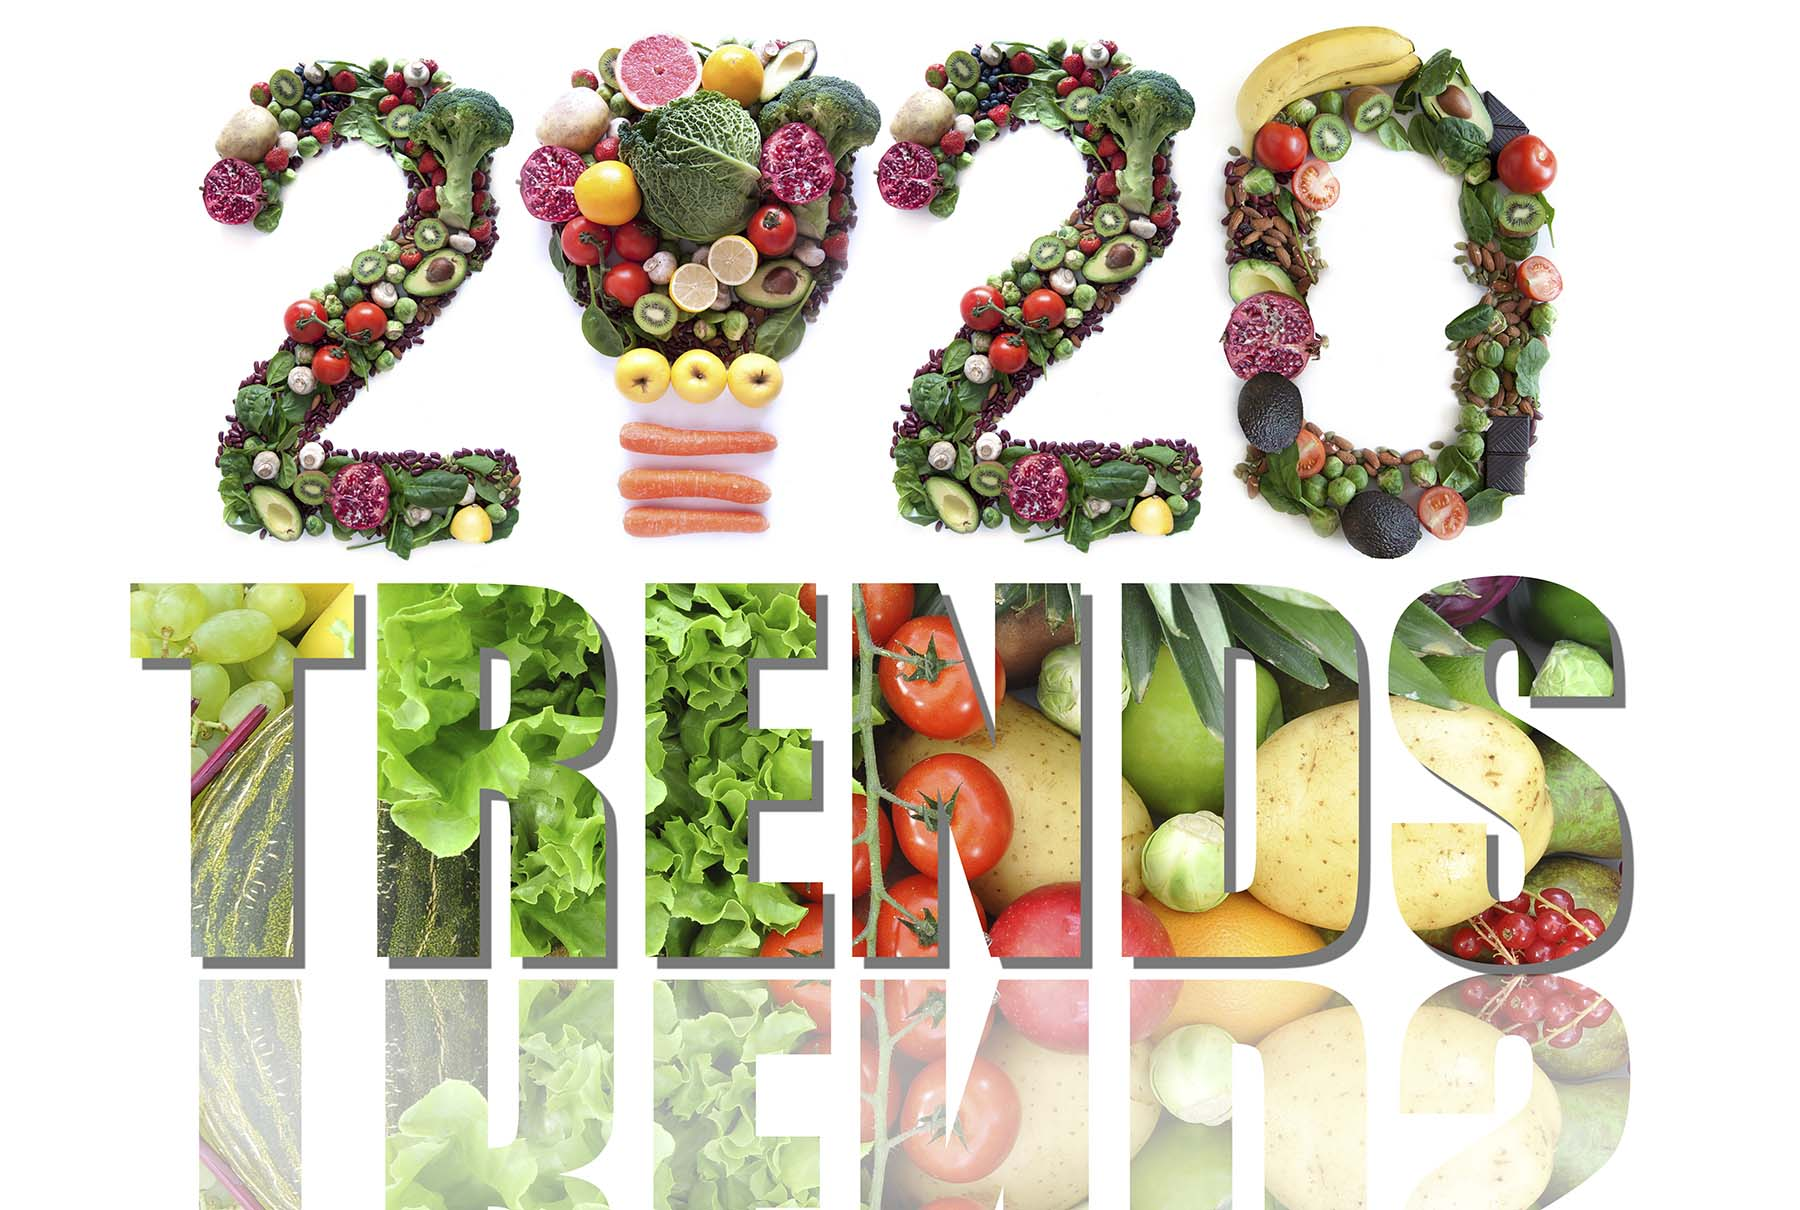 The 12 Food Trends You're Going To See Everywhere In 2020